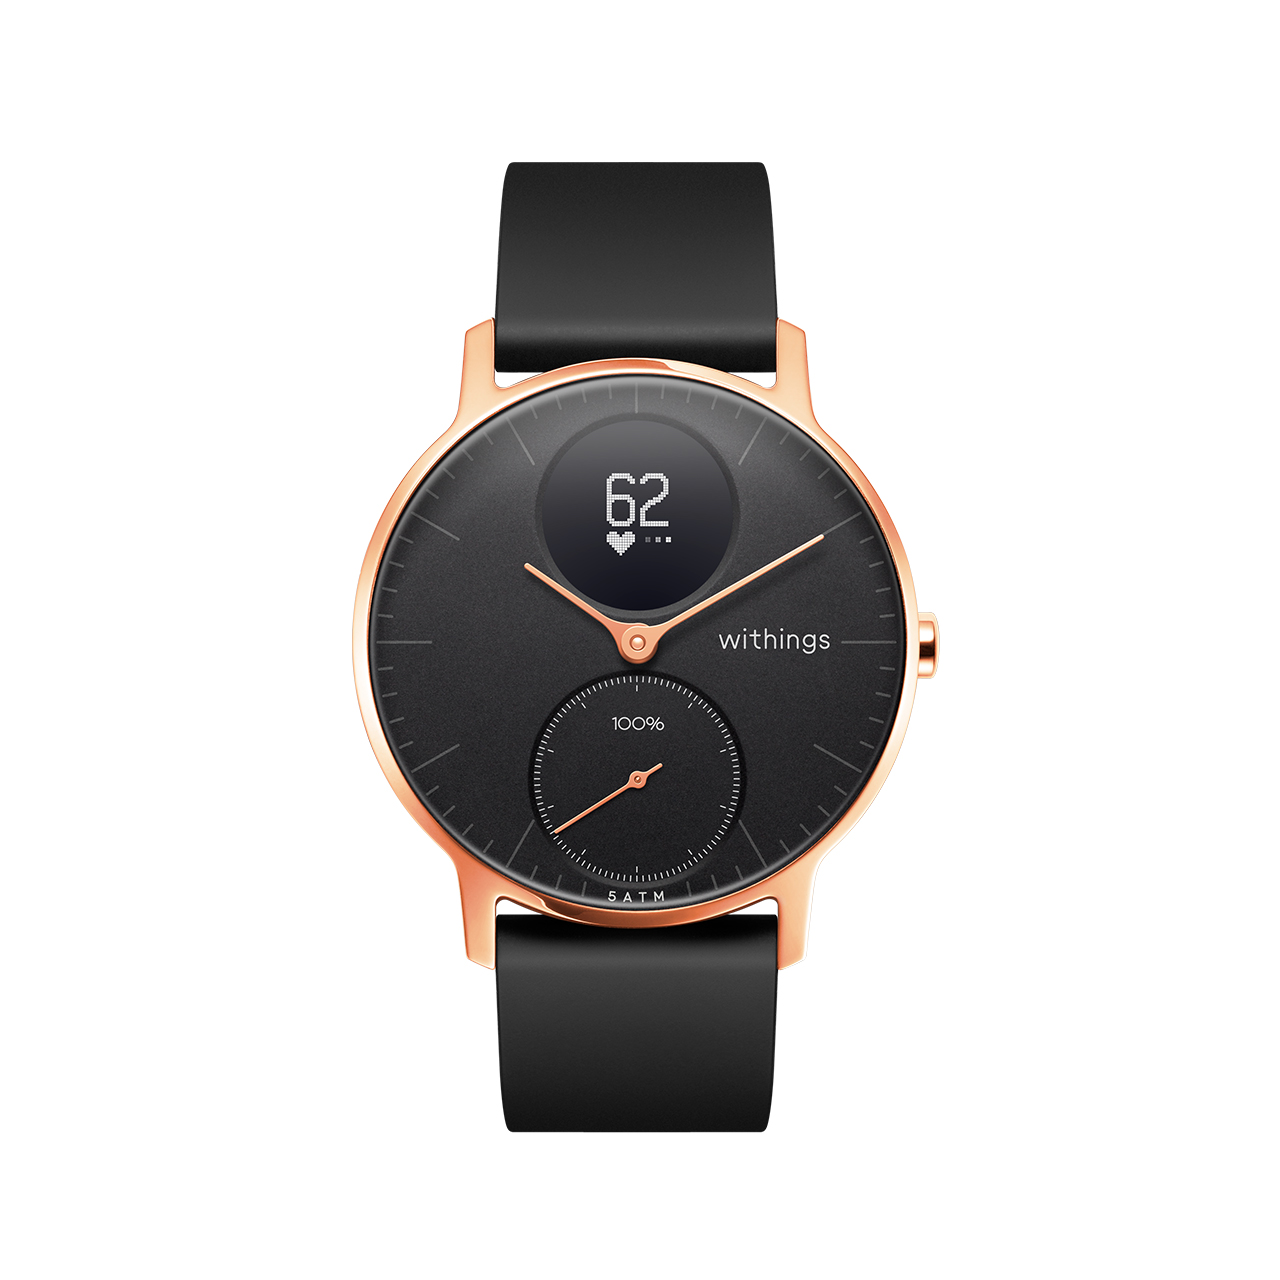 Withings Steel HR (Nokia), 36mm, Black & Rose Gold - Hybrid Smartwatch - Heart rate & Smartphone notifications - Withings Official Store